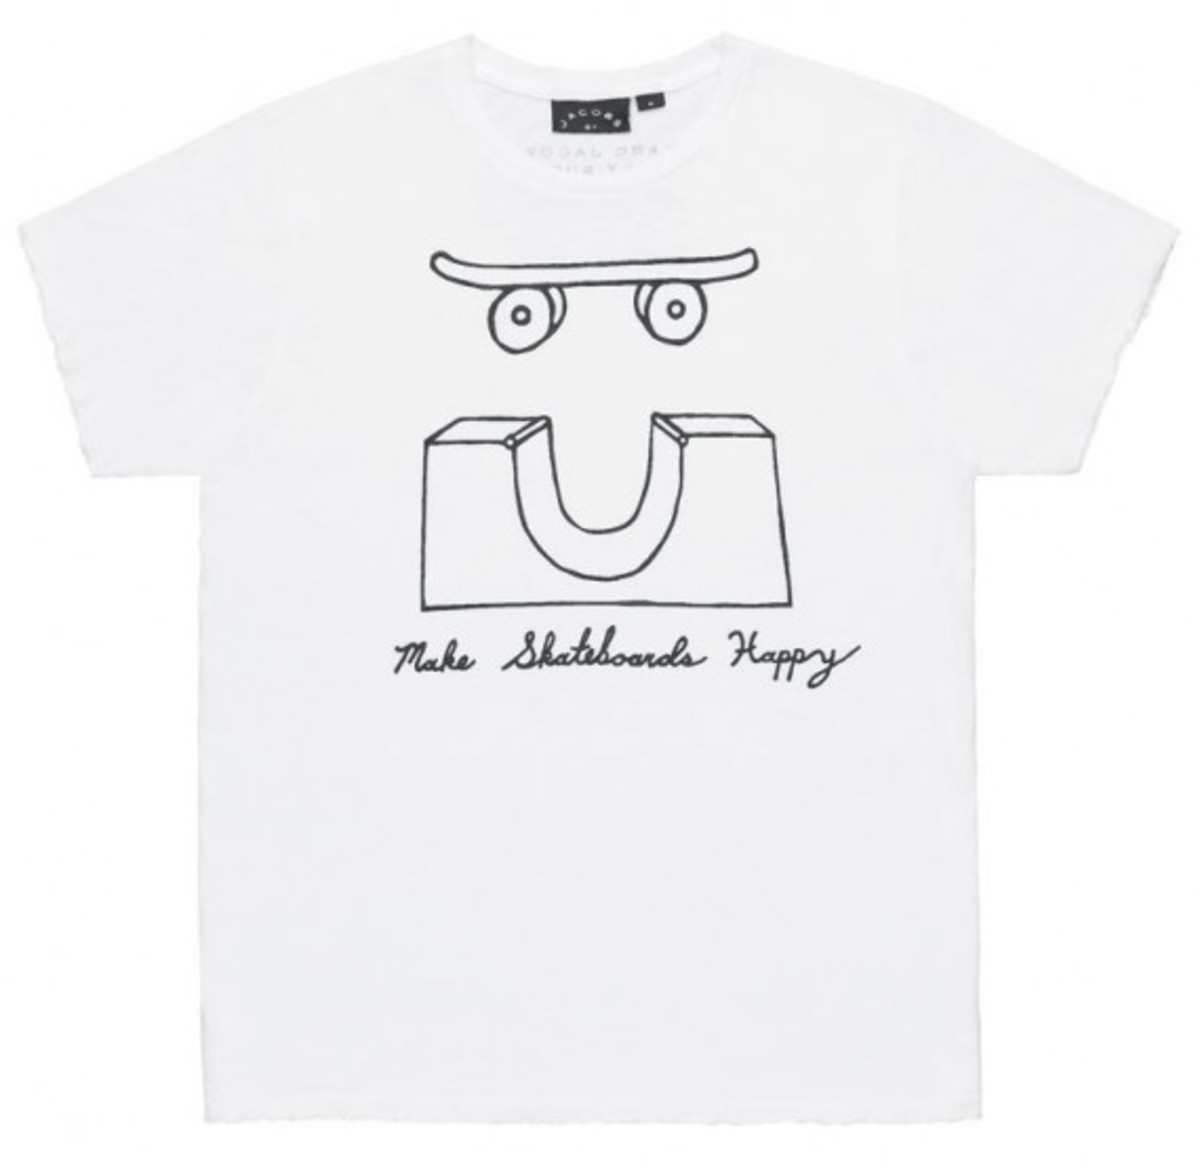 marc-jacobs-skateboard-tshirt-05